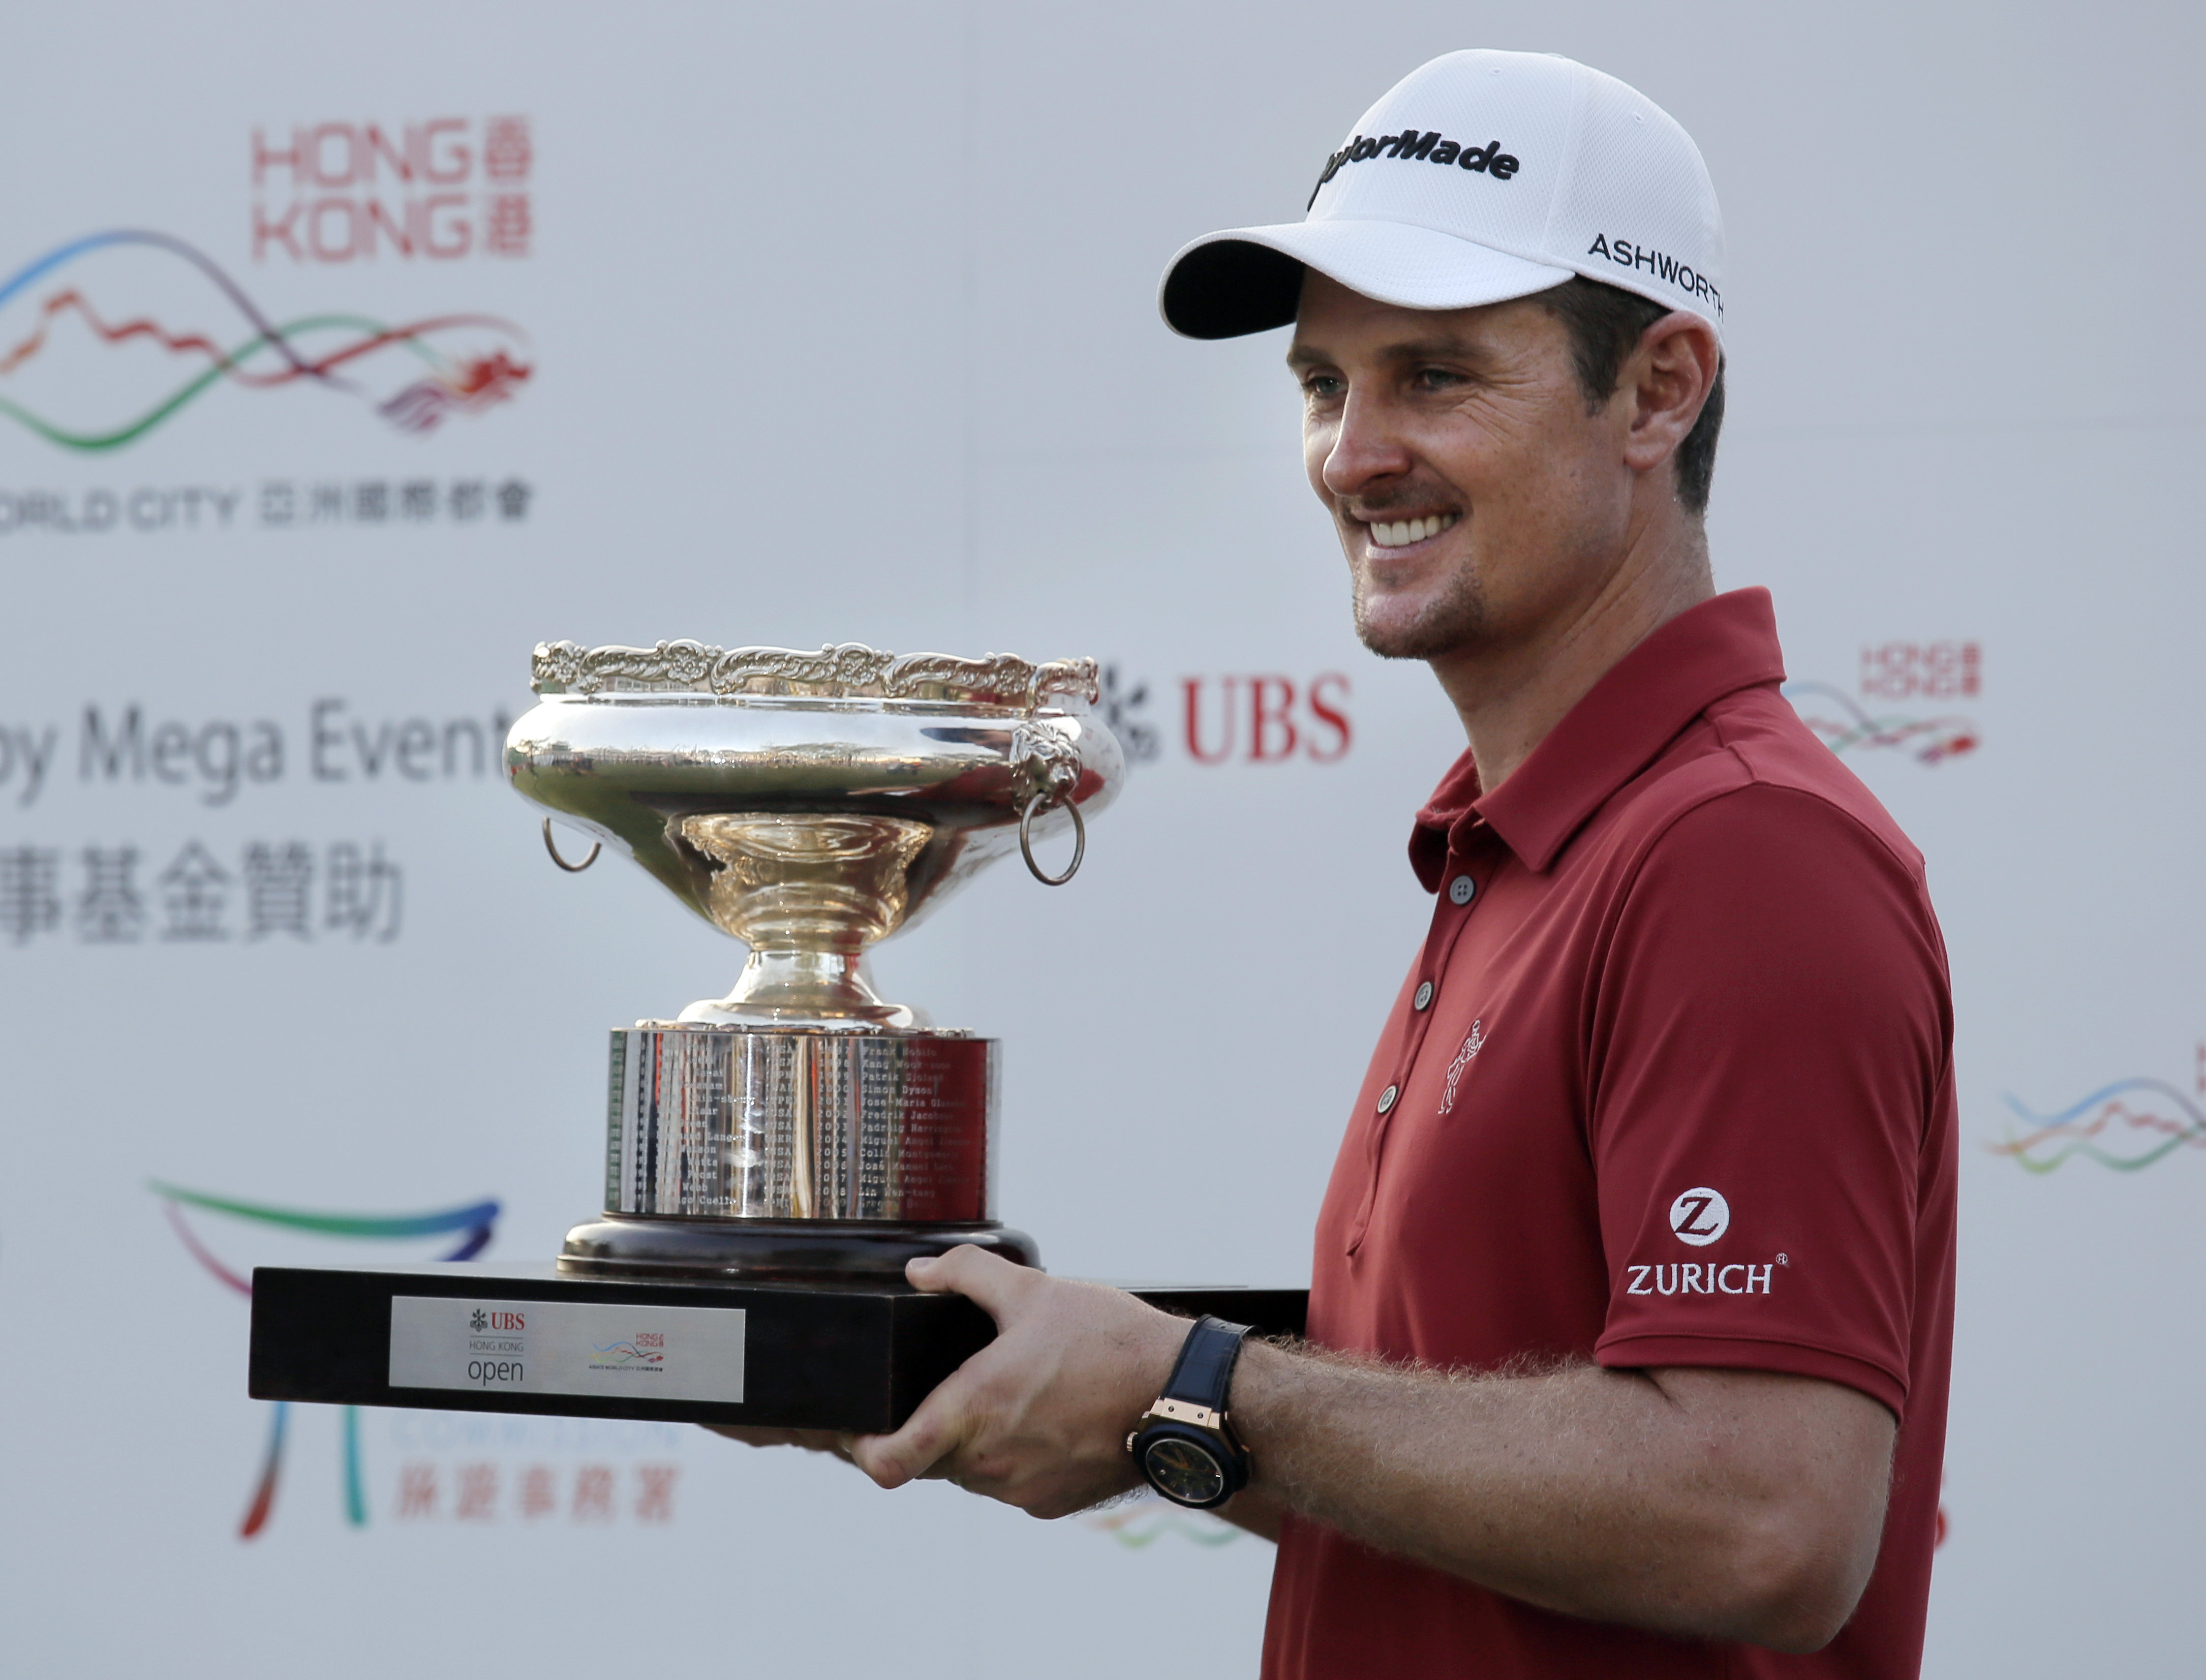 Justin Rose of England poses with the trophy after winning the final round of the Hong Kong Open golf tournament in Hong Kong, Sunday, Oct. 25, 2015. (AP Photo/Vincent Yu)